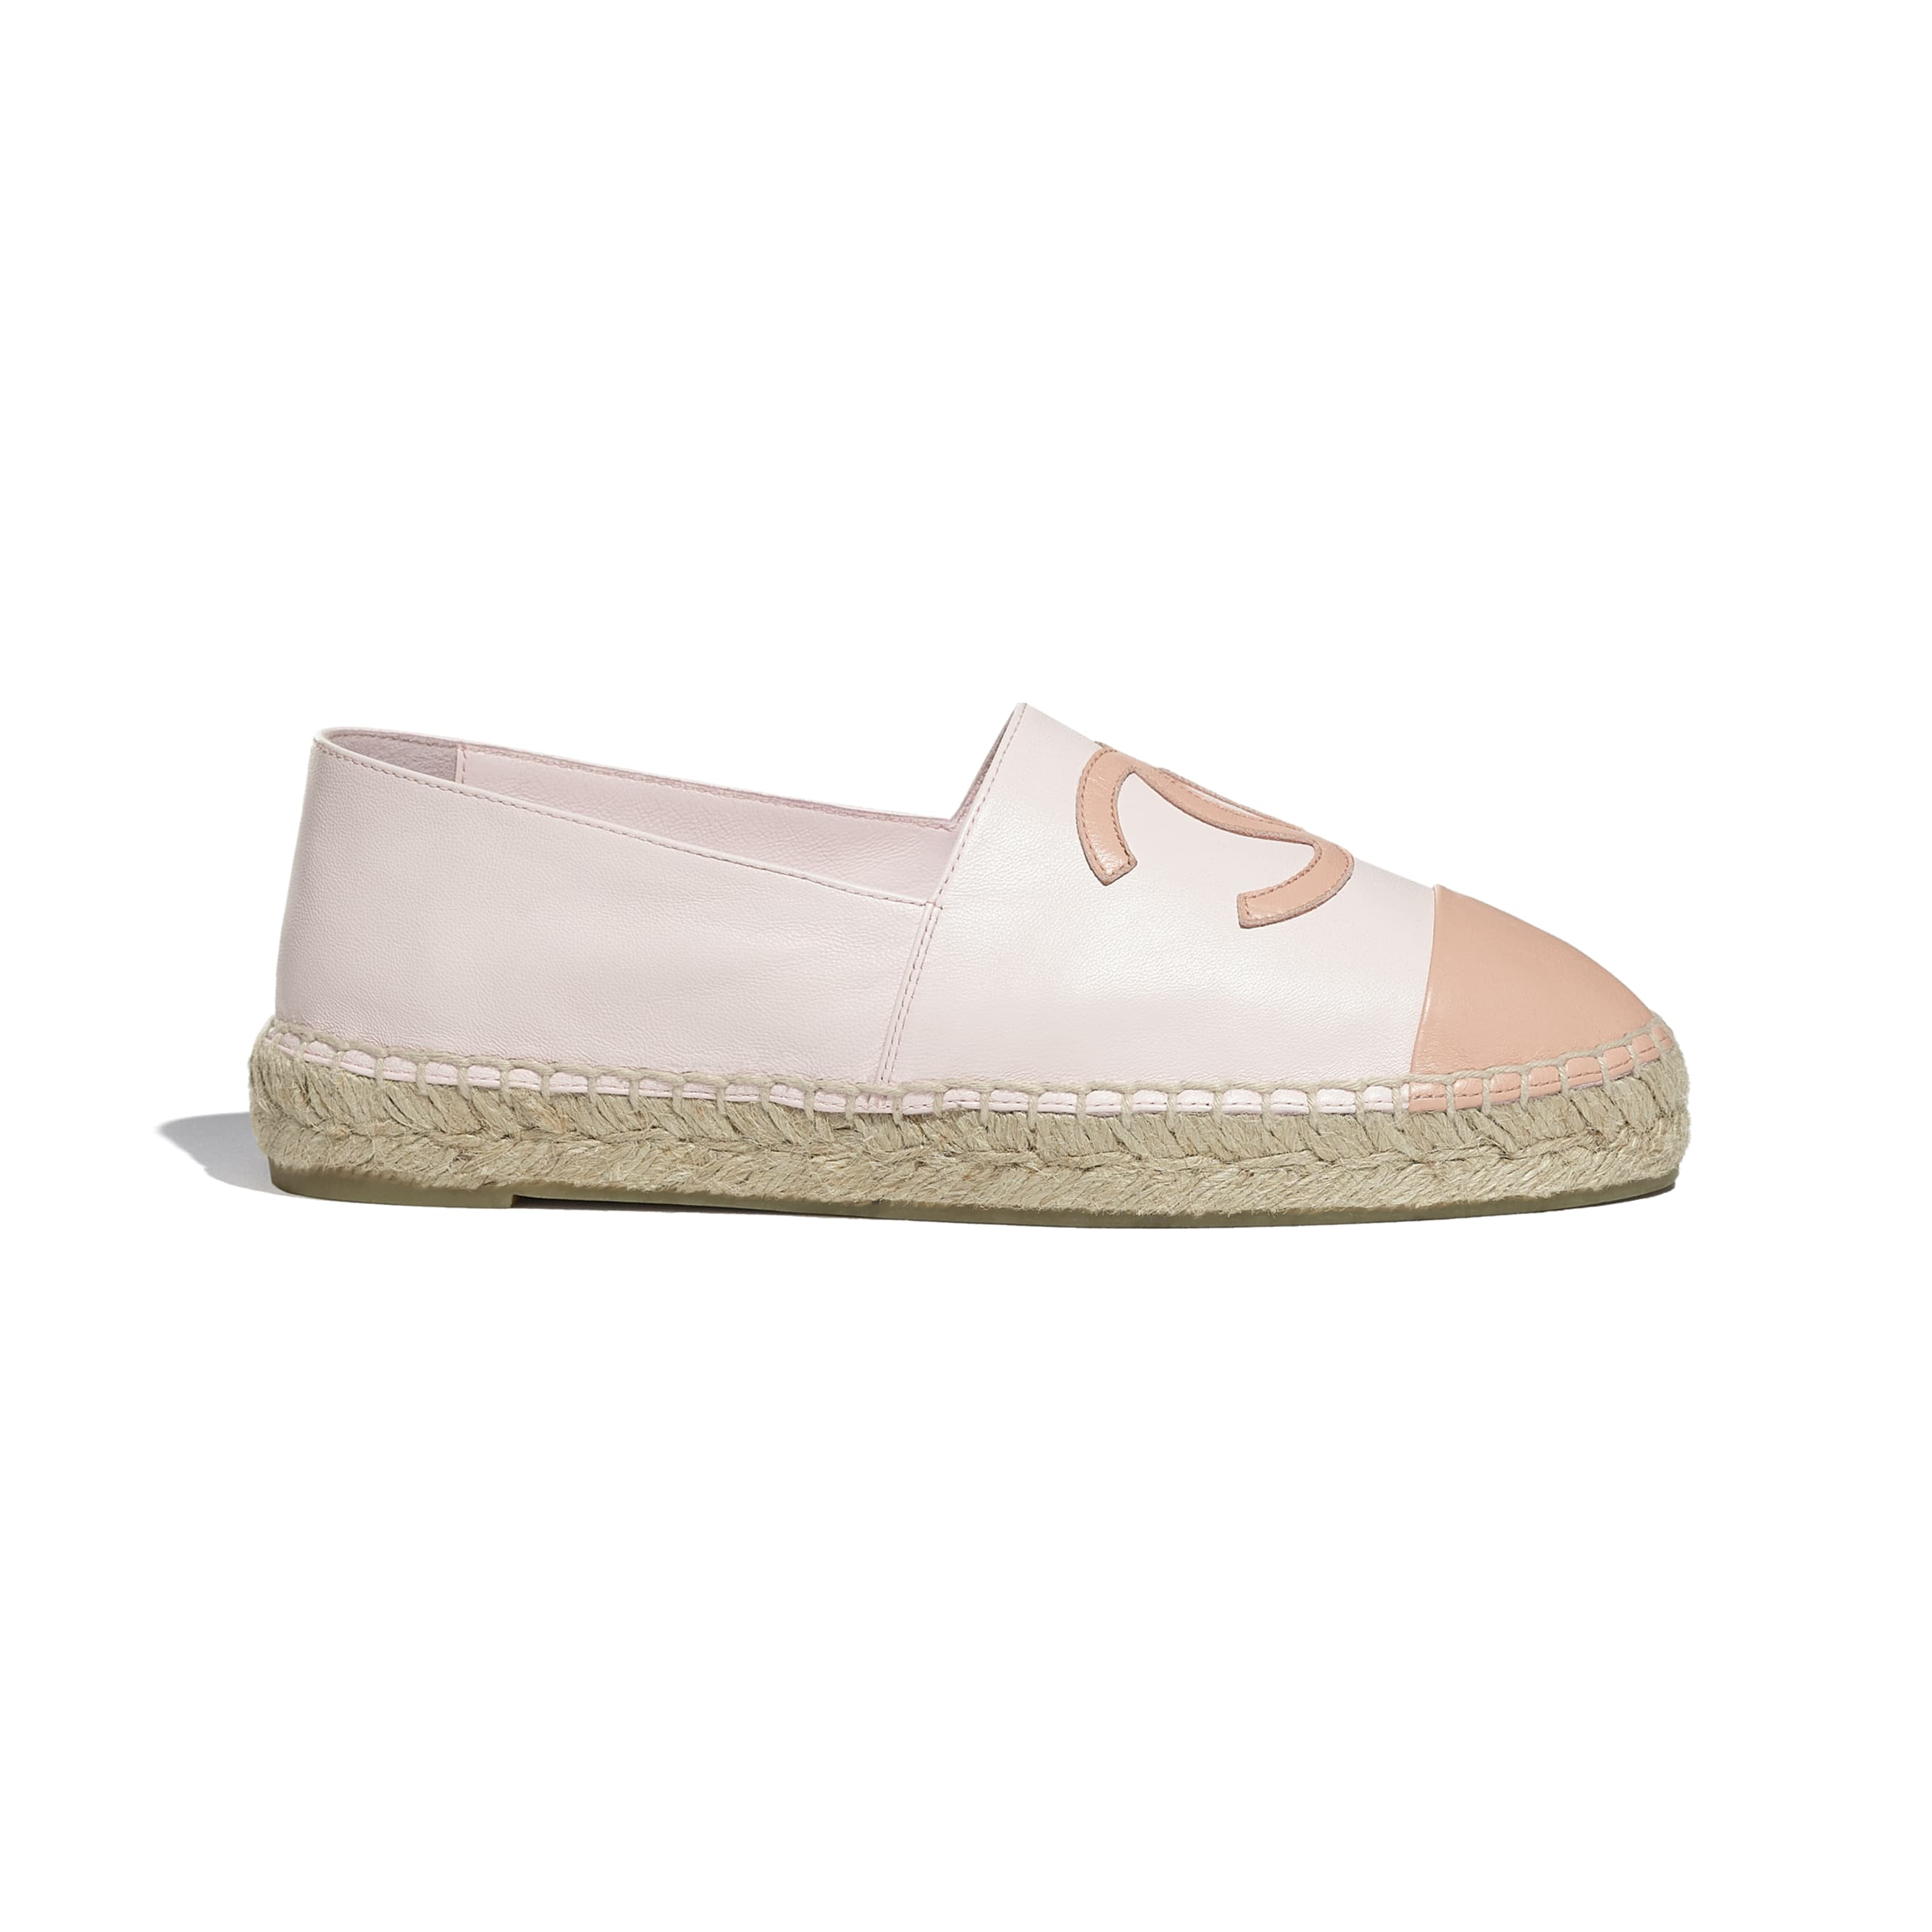 Espadrilles - Light Pink - Lambskin - CHANEL - Default view - see standard sized version